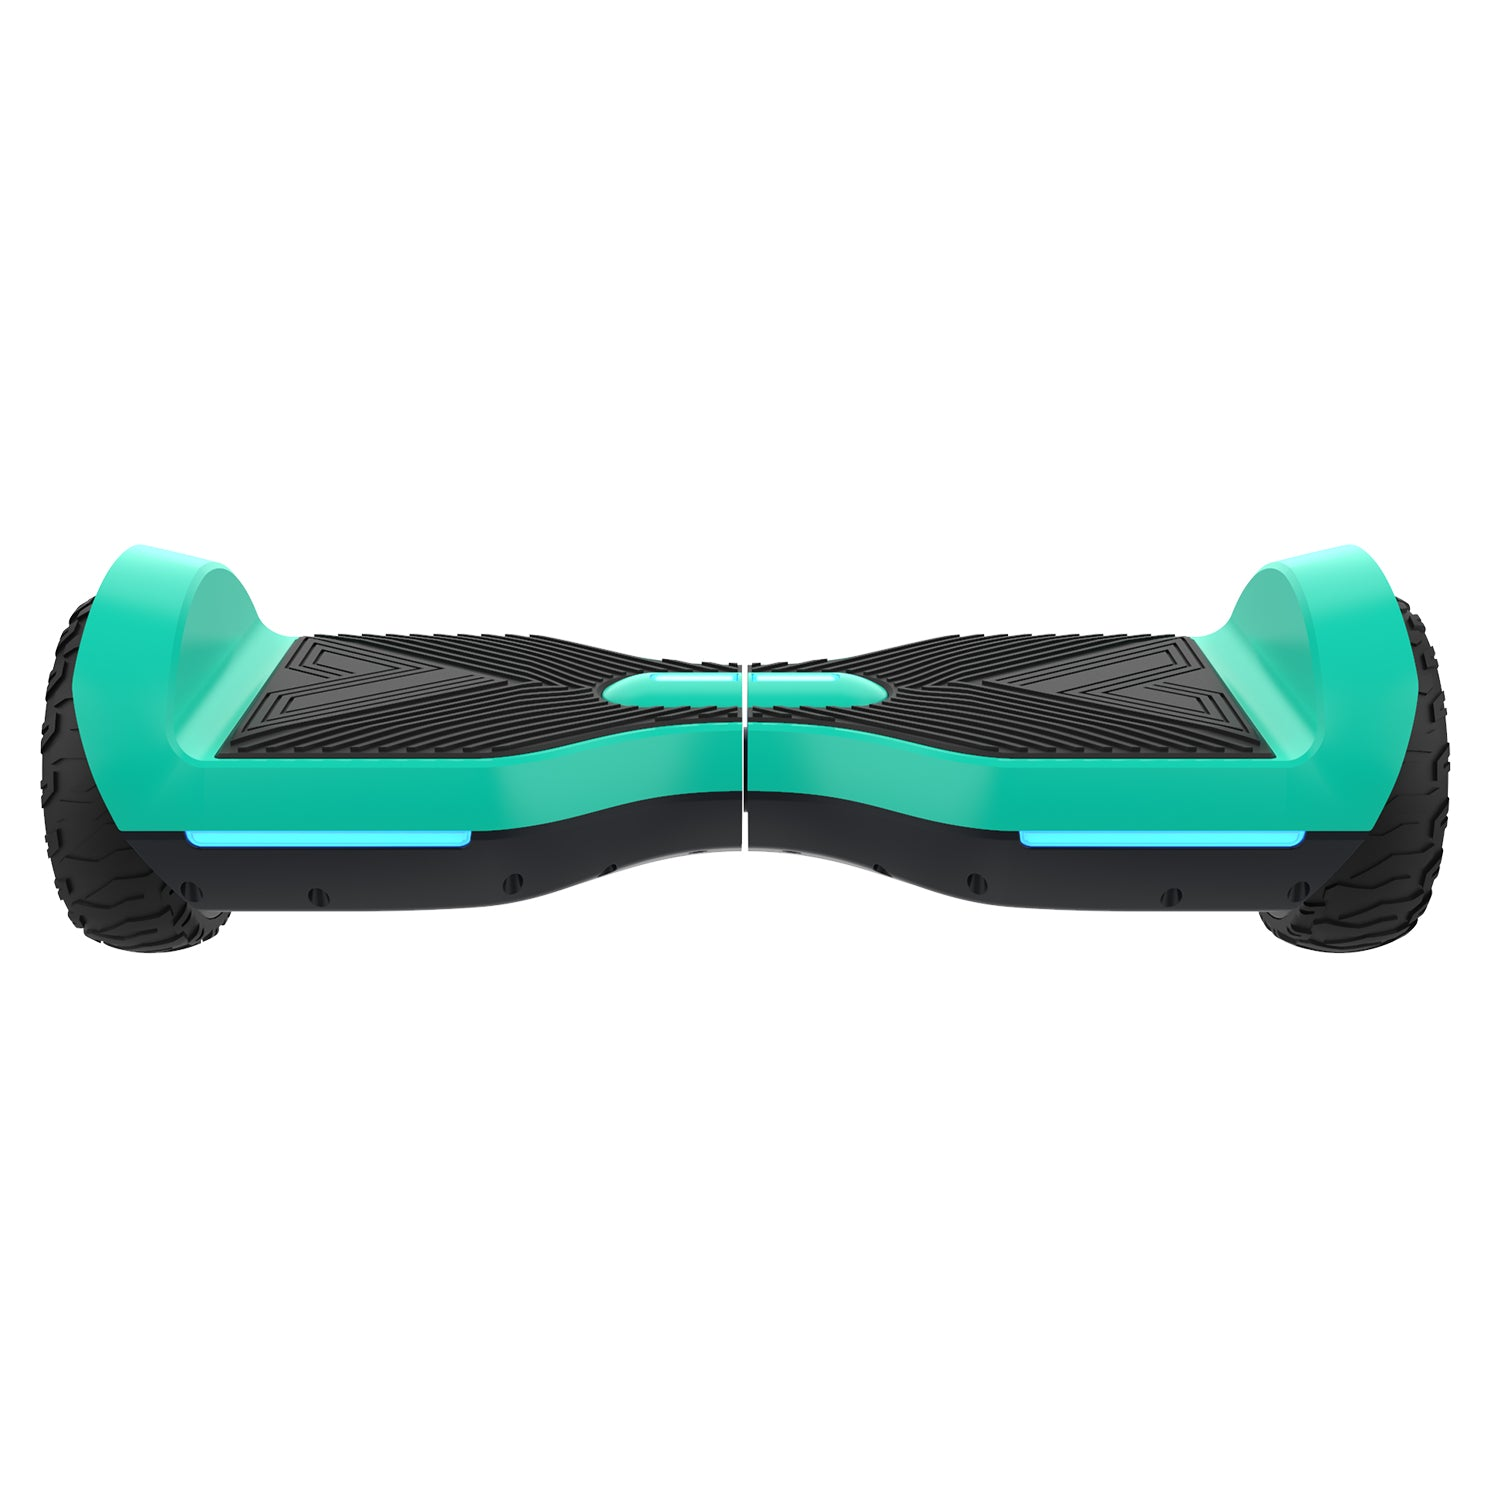 teal srx a6 bluetooth hoverboard front image